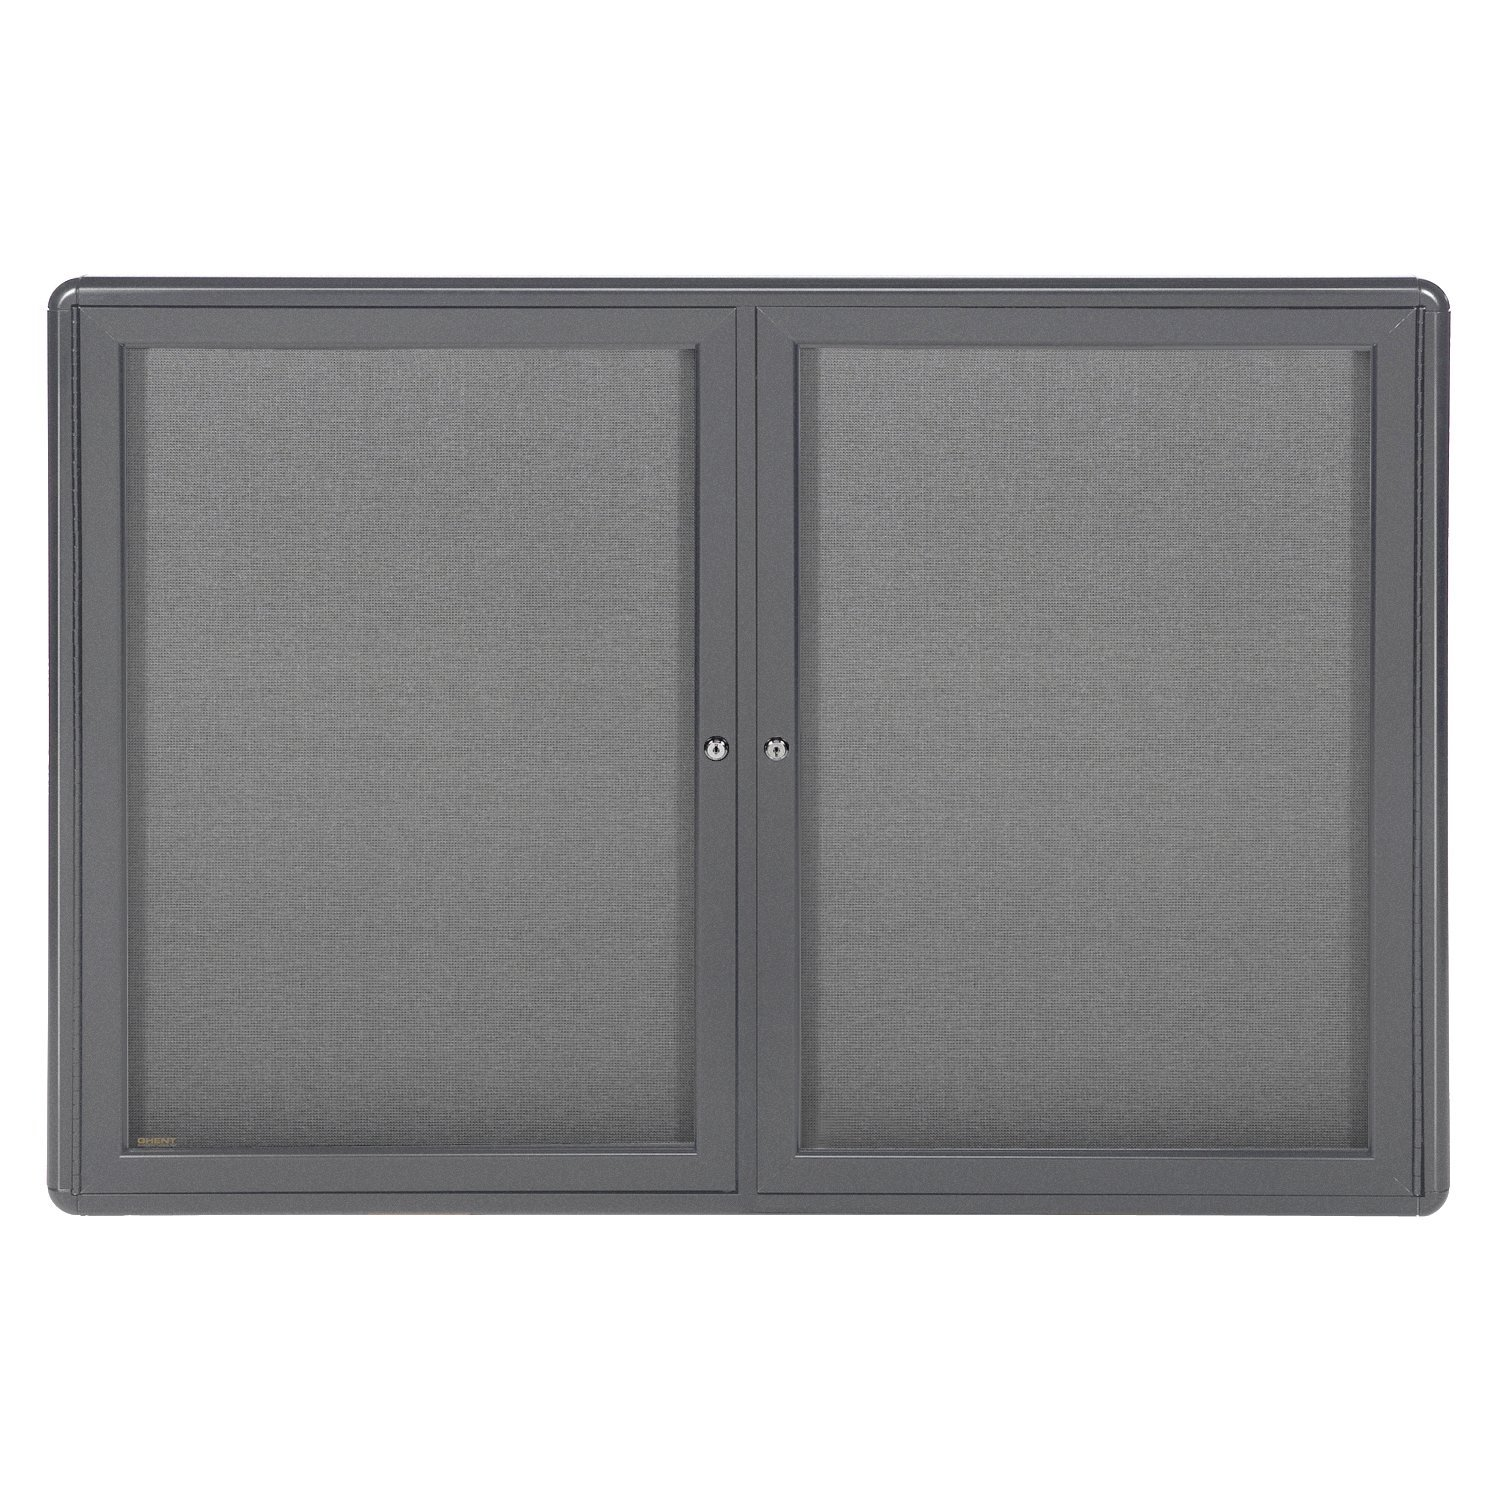 36''x60'' 2-Door Ovation Bulletin Board, Gray Fabric, Gray Frame